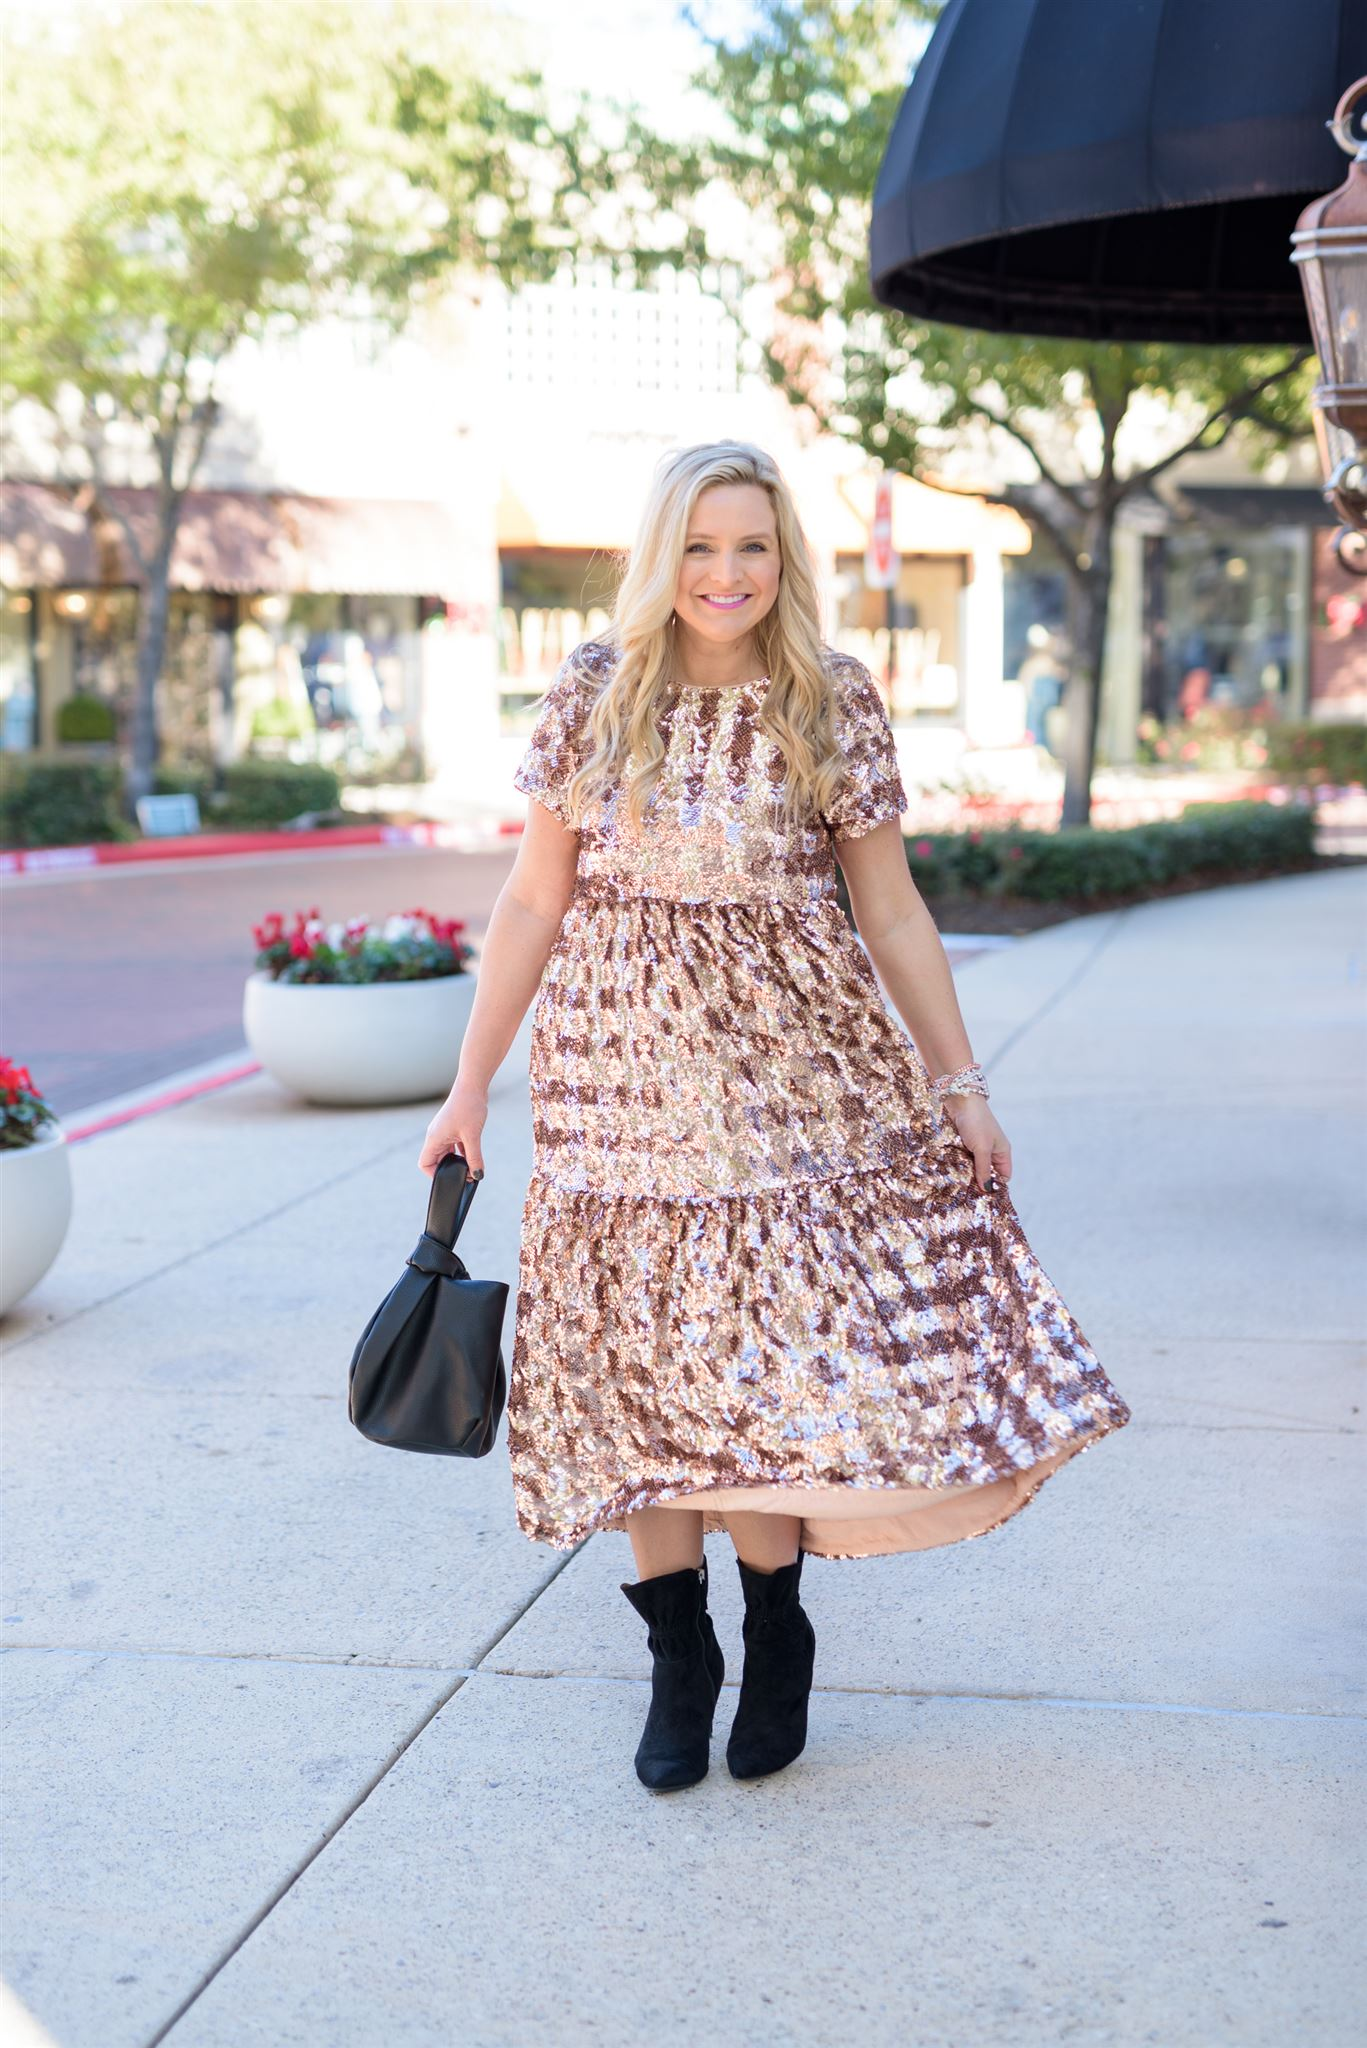 December Outfits by popular Houston fashion blog, Fancy Ashley: image of a woman standing outside on a sidewalk and wearing a gold, silver and copper sequin tiered dress with black suede ankle boots while holding a black purse.